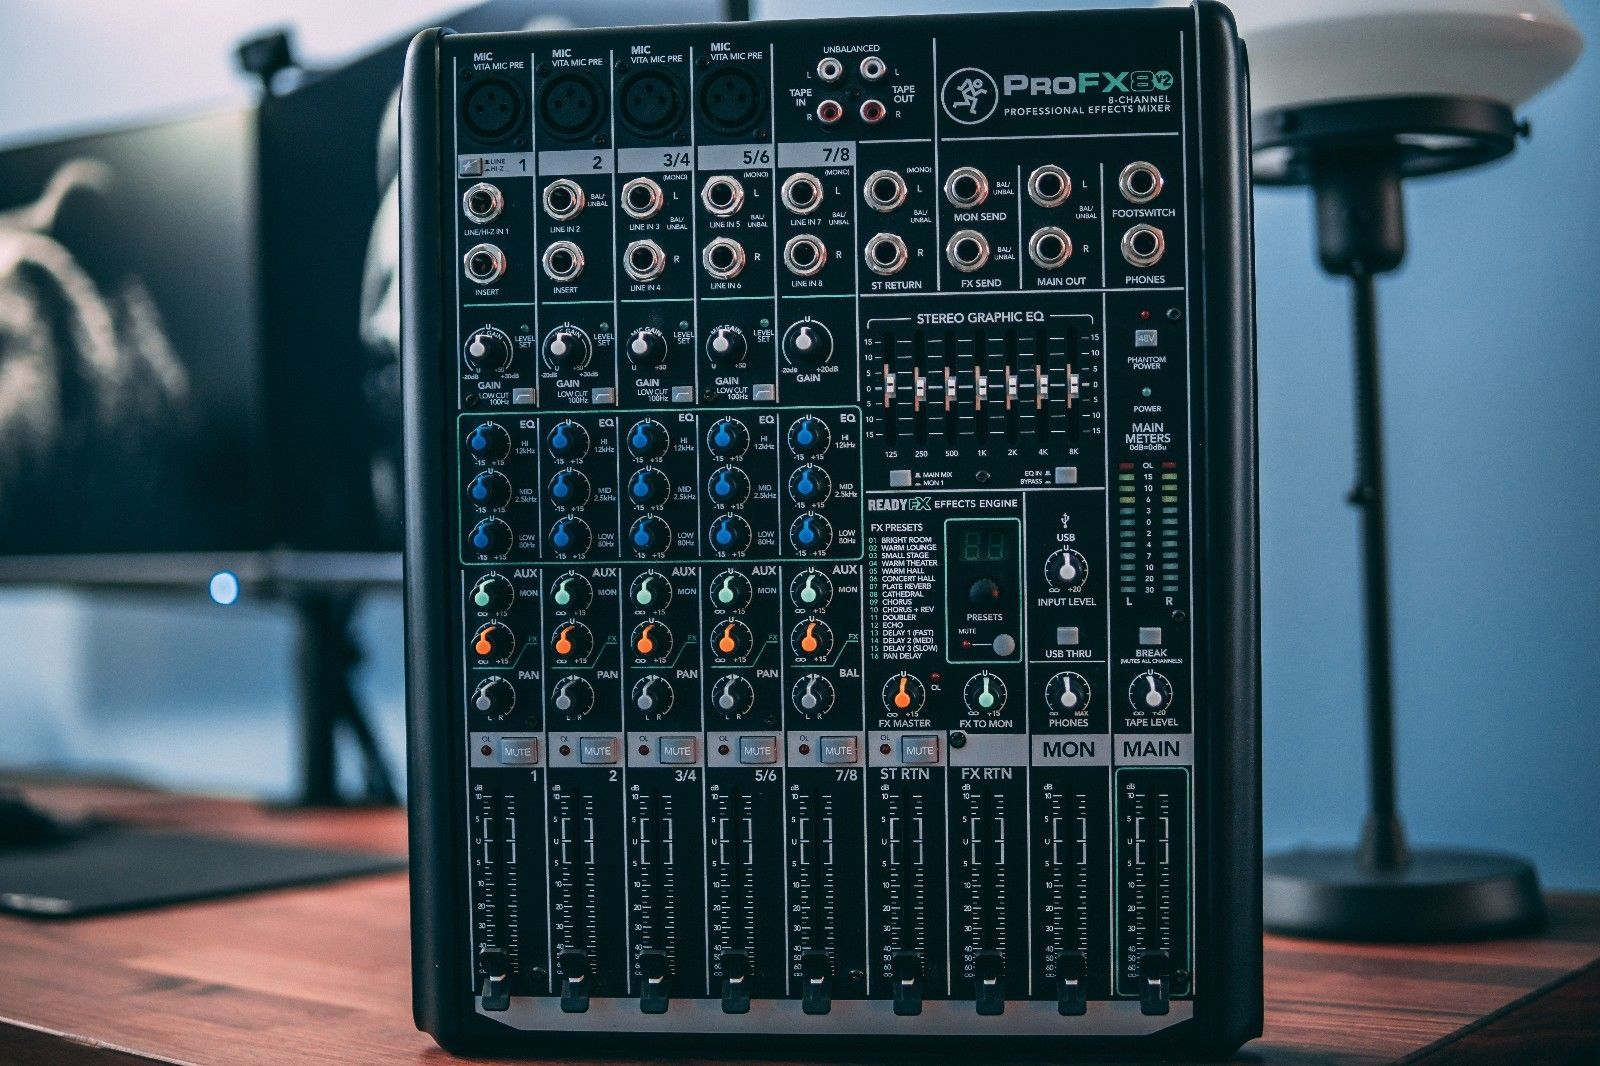 Mackie Profx8v2 8 Channel Professional Audio Mixer With On Board Fx Profx8 V2